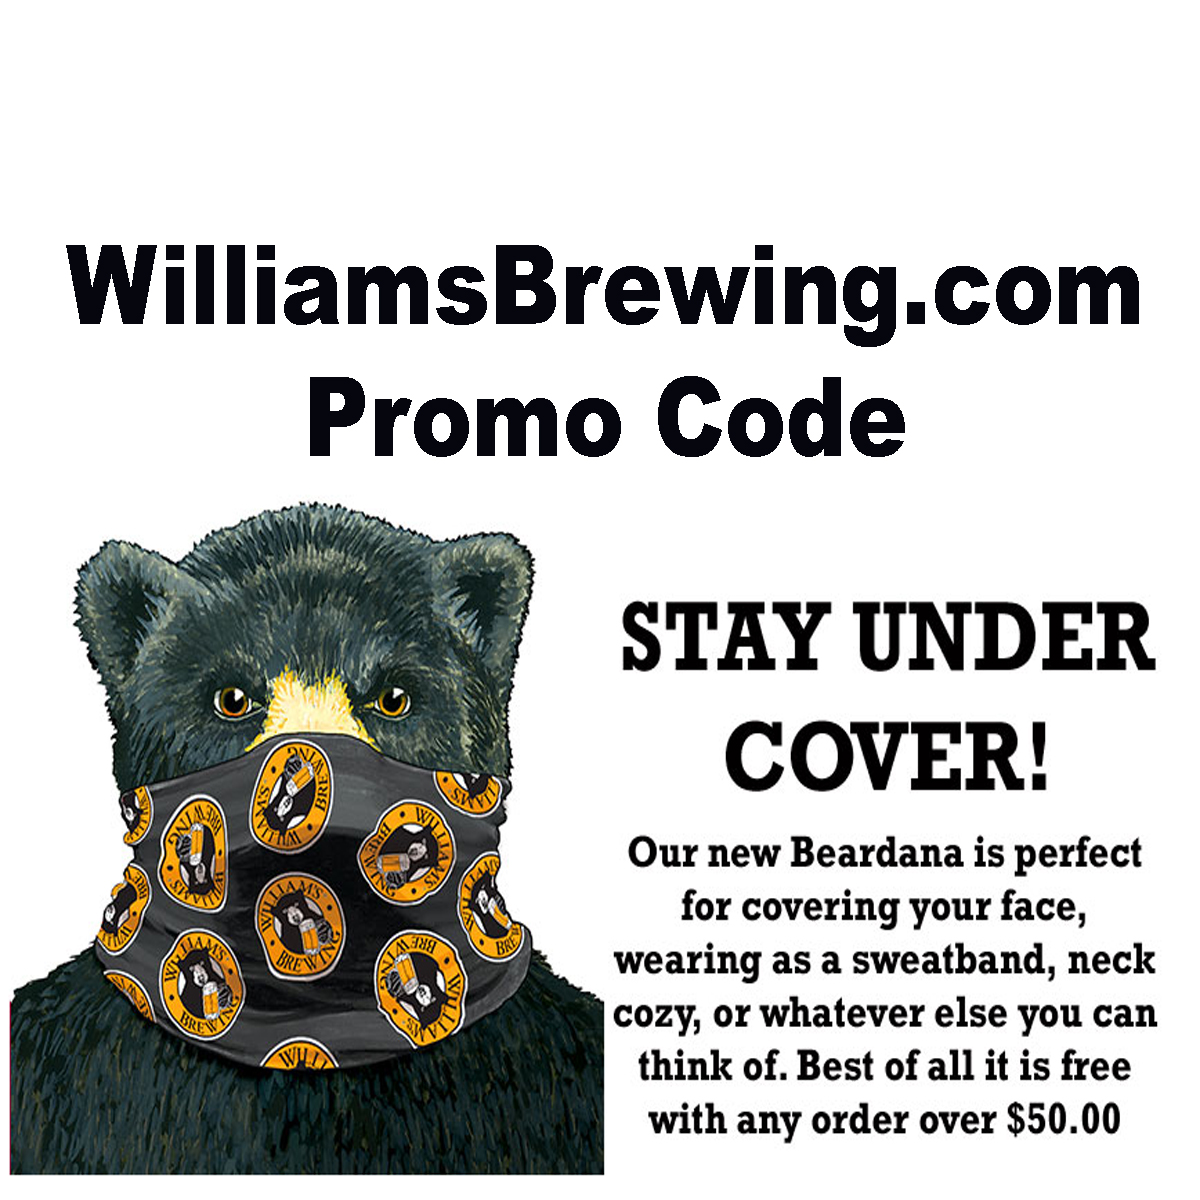 Home Wine Making Coupon Codes for Spend $50 at Williams Brewing and get a FREE BEARDADA with this WilliamsBrewing.com Coupon Code for August 2020 Coupon Code